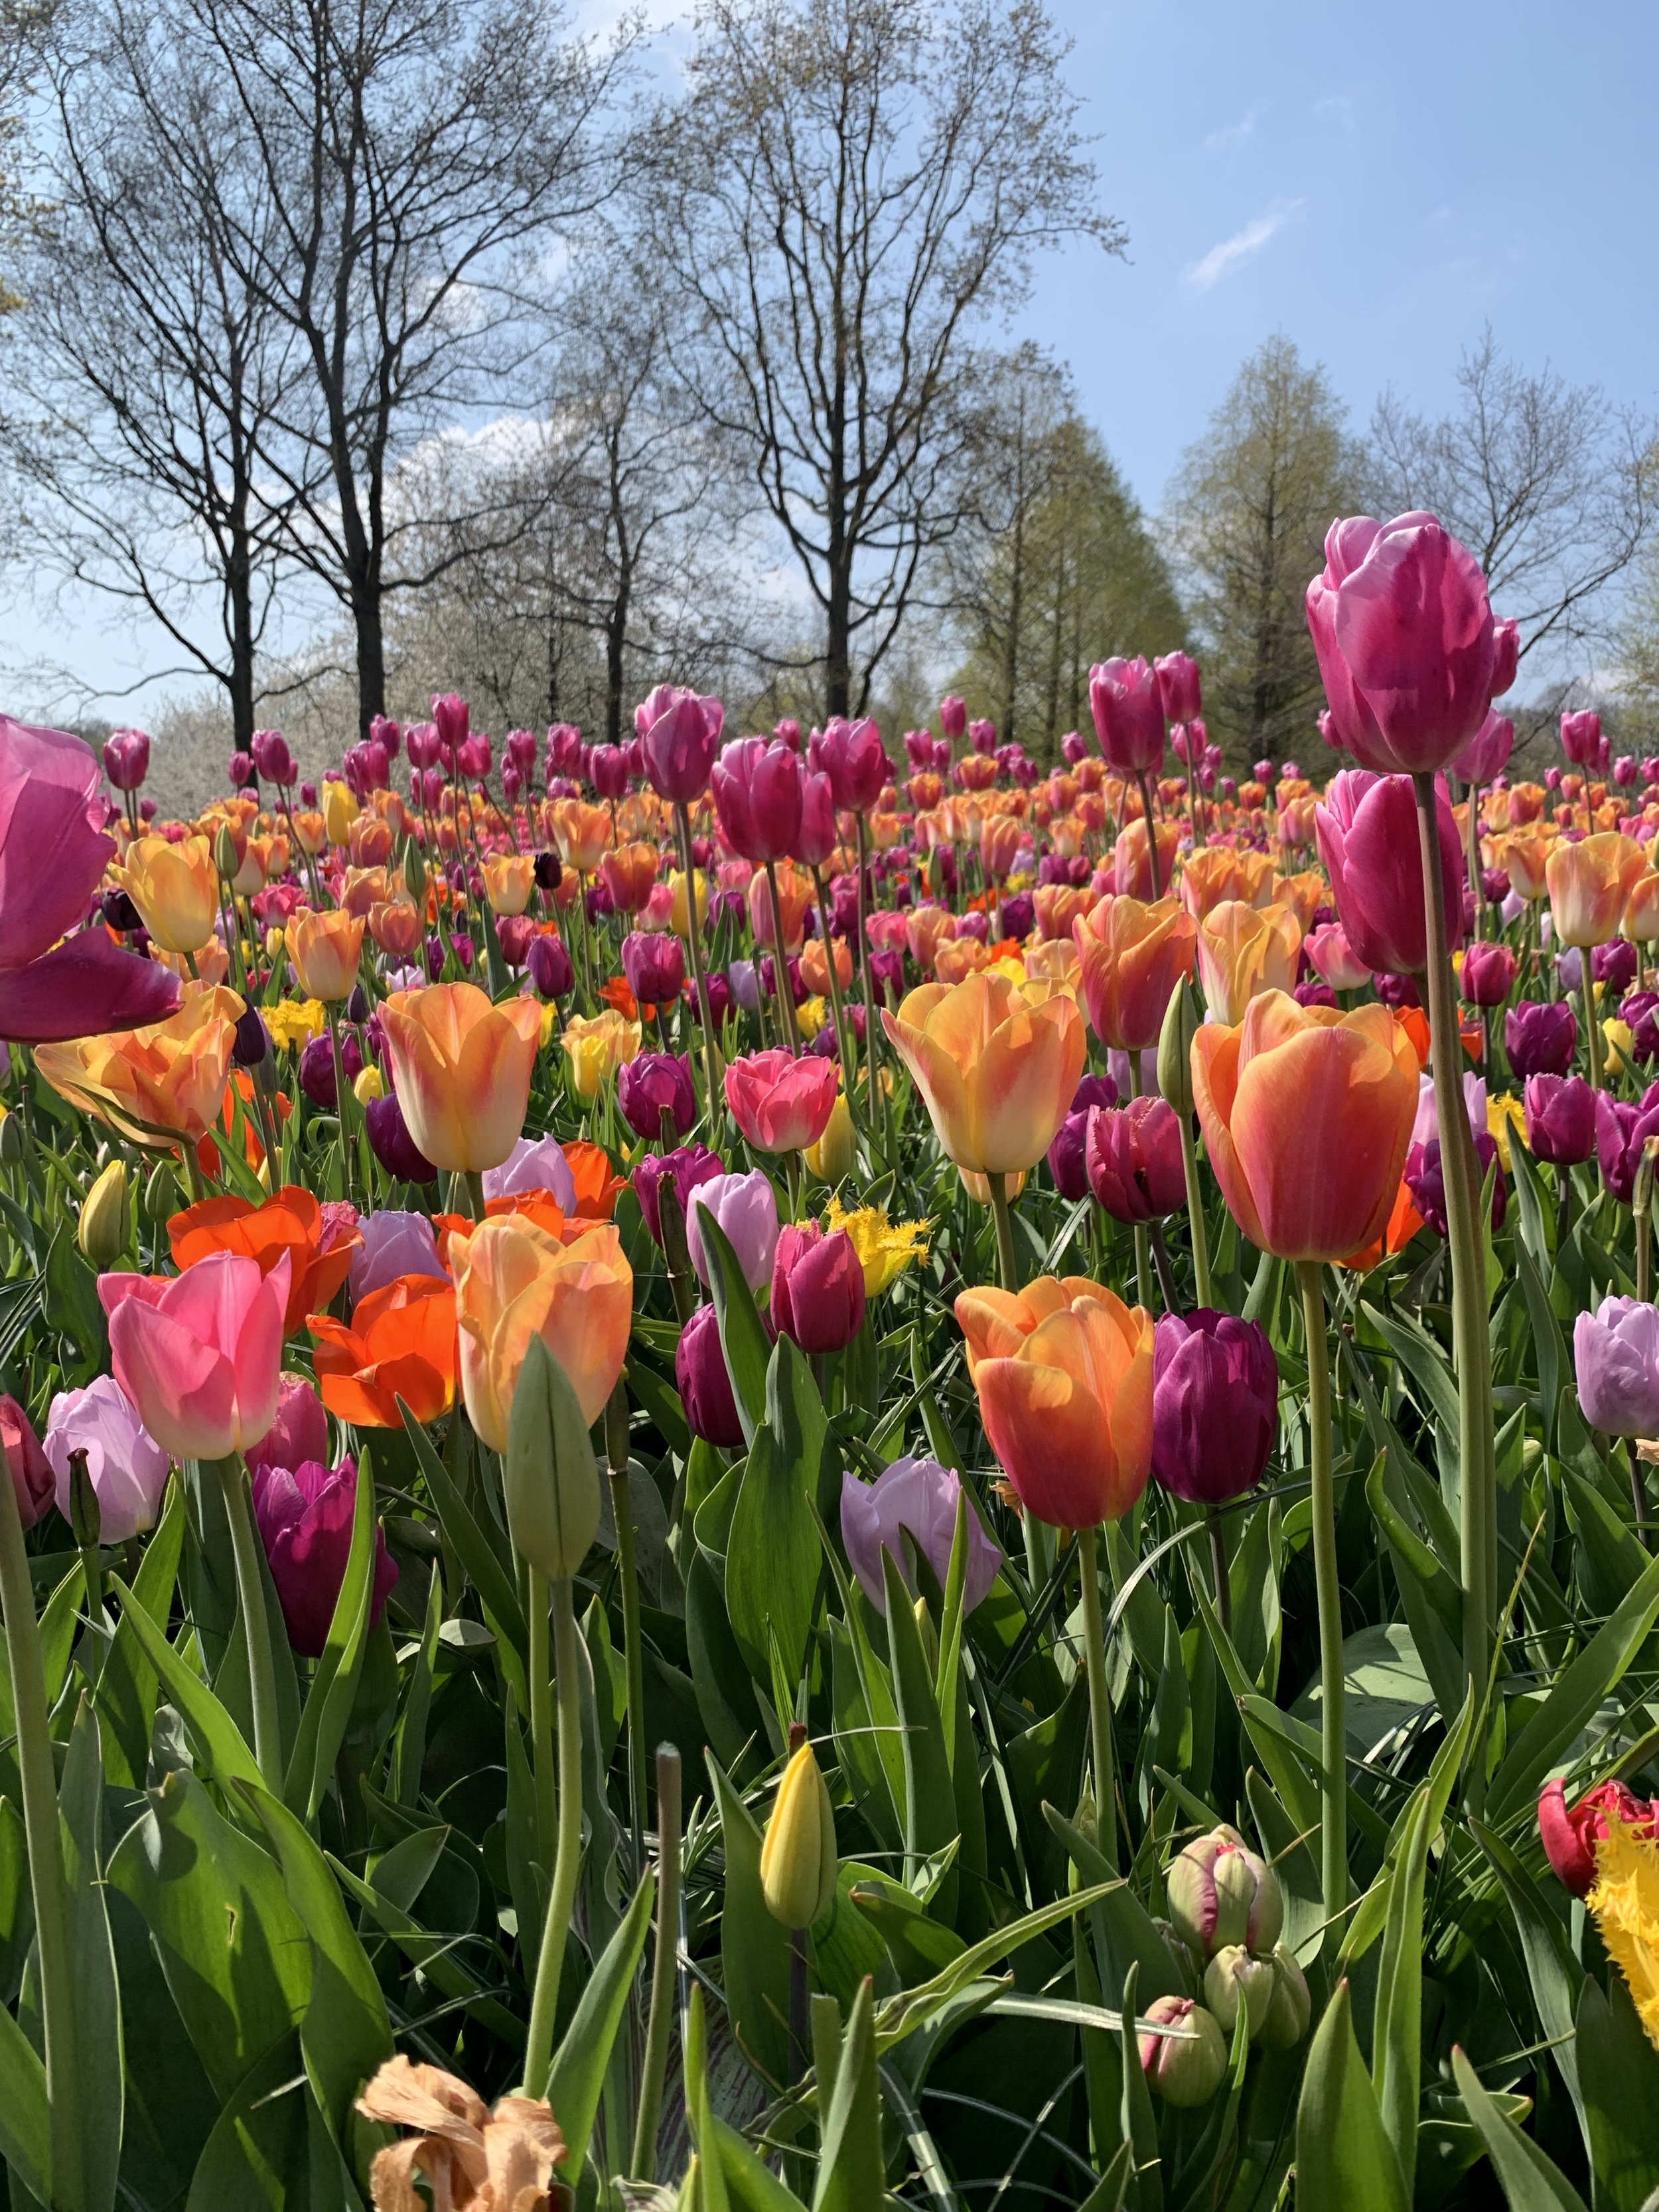 Photo from my own collection. Keukenhof. April 2019